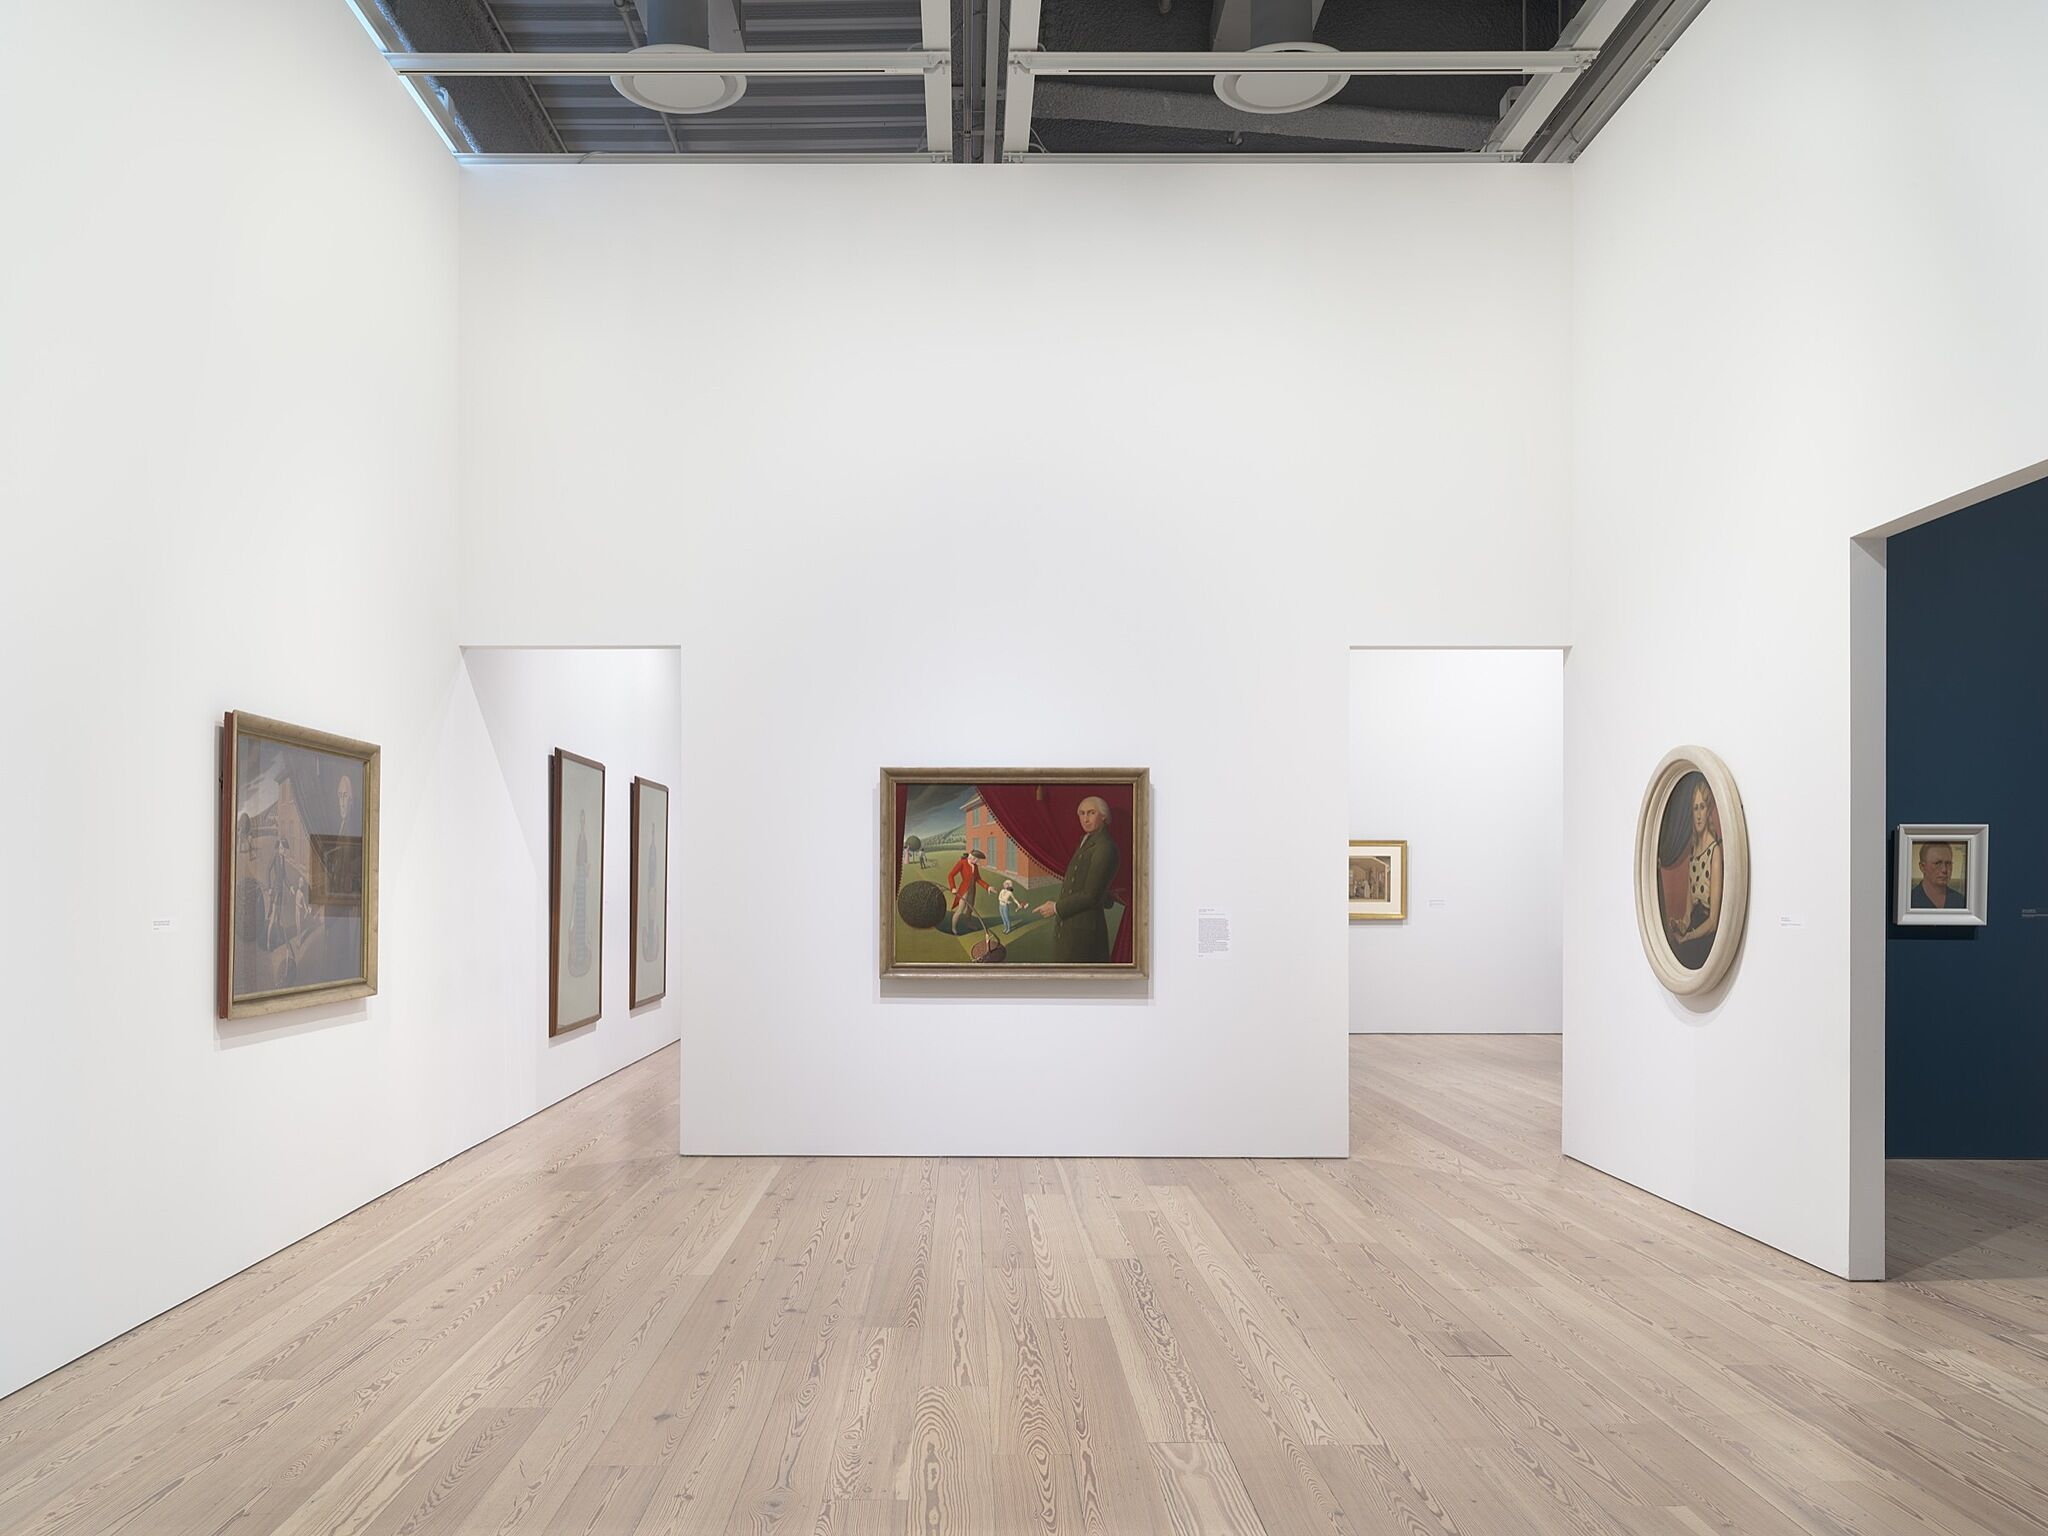 A photo of the Whitney galleries with various paintings.